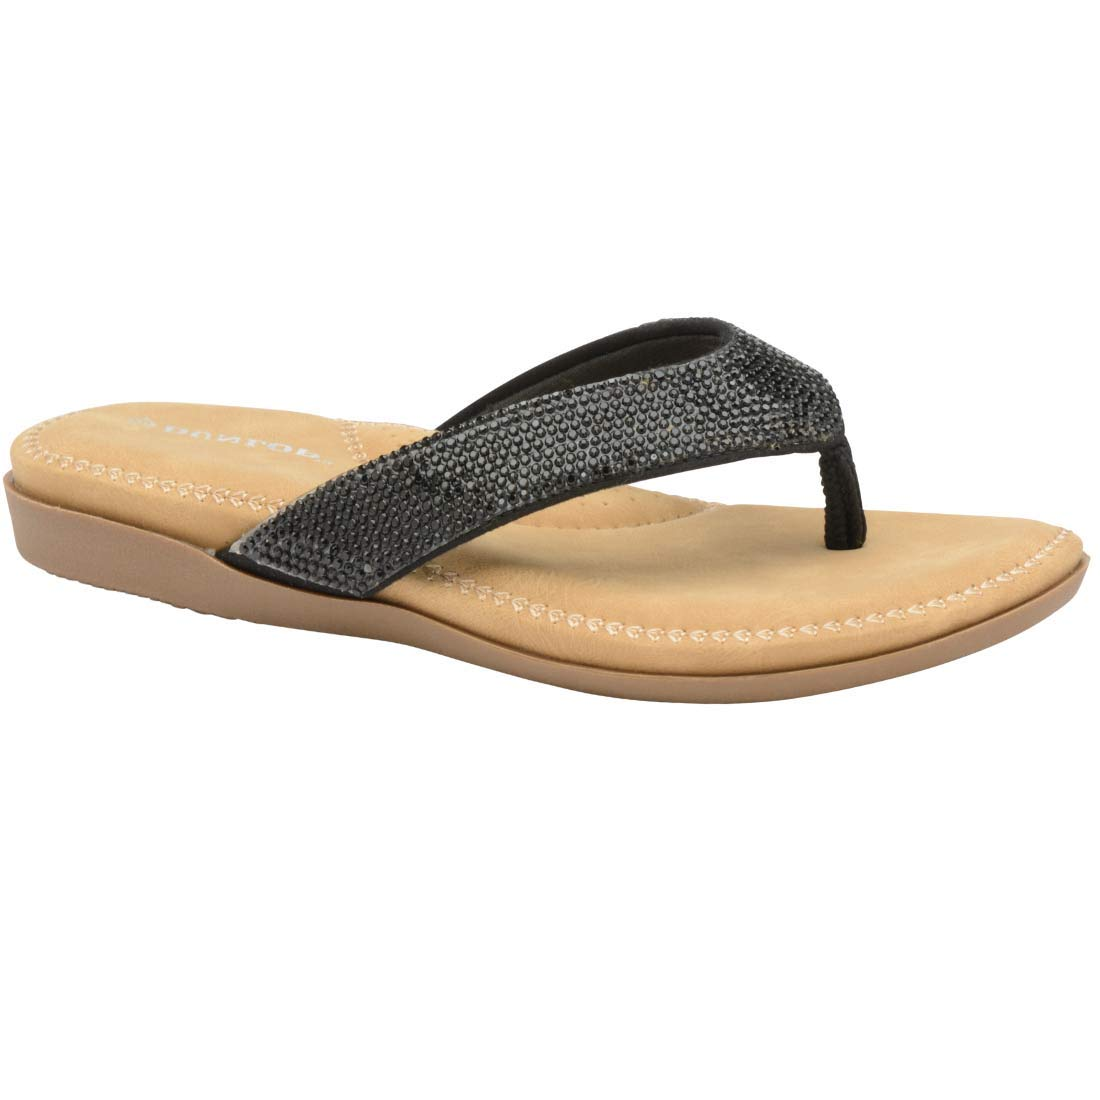 2a8b384c28bd Dunlop Flip Flops Toe Post Slip On Sandals Flat Cushioned  Amazon.co.uk   Shoes   Bags